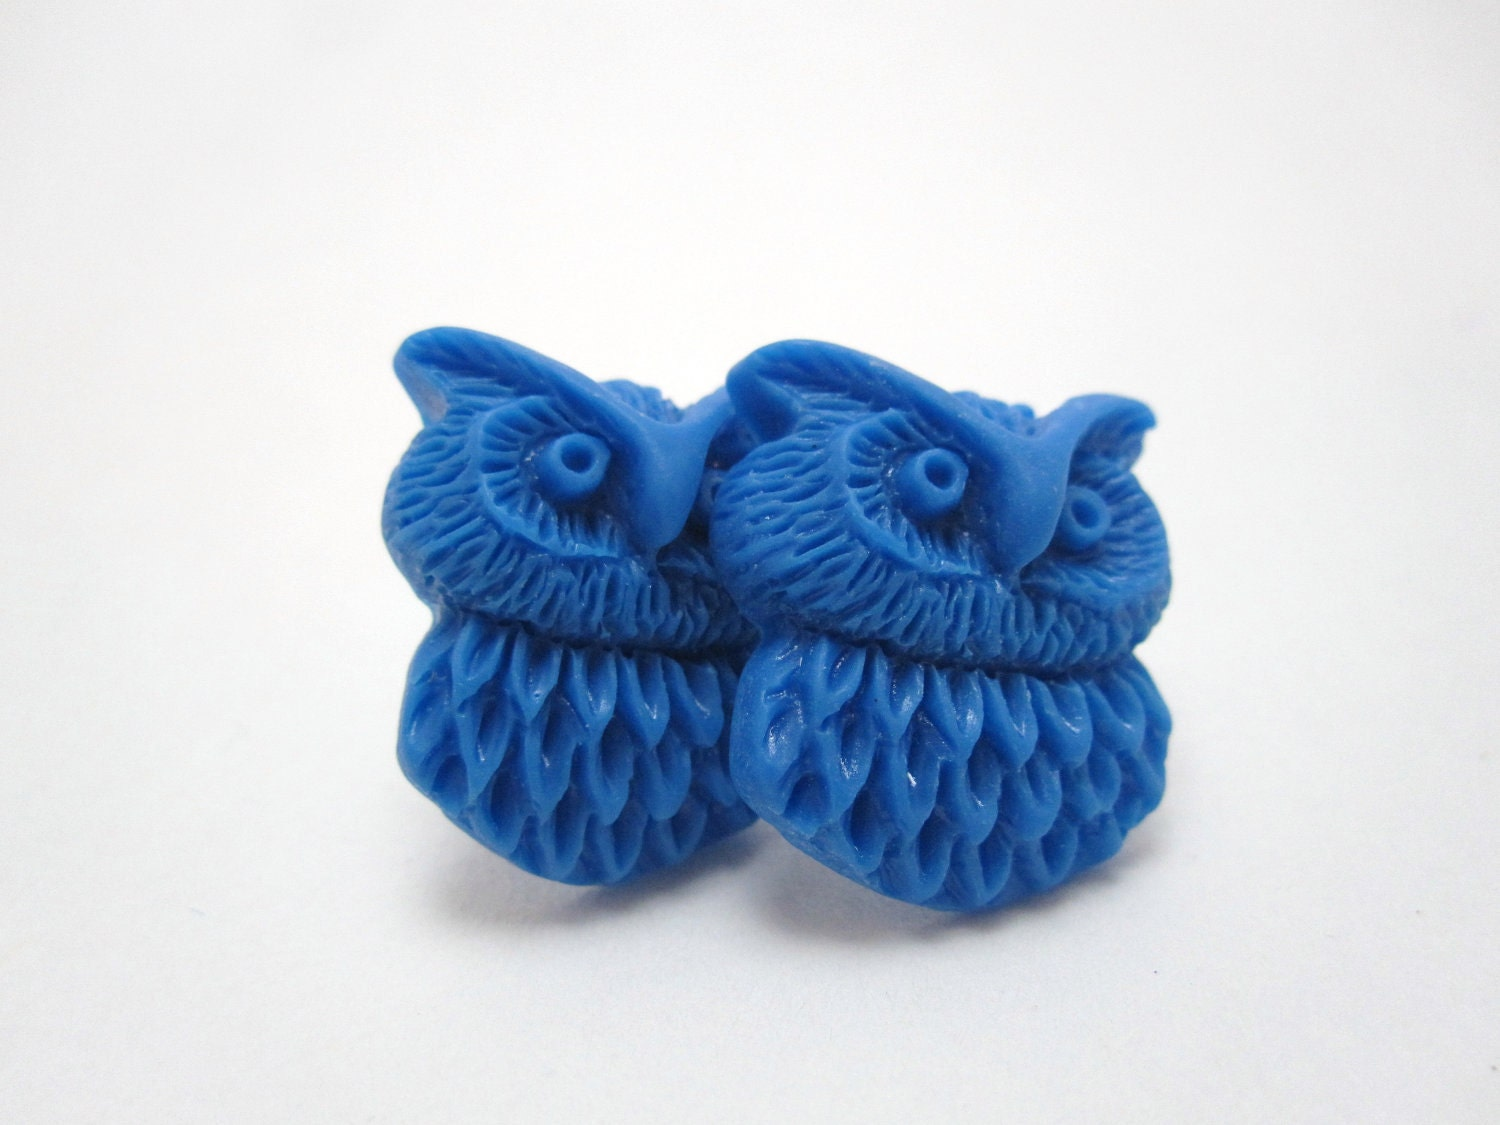 Blue owl studs - blue owls on titanium posts - nickel free for sensitive ears - LazyOwlBoutique